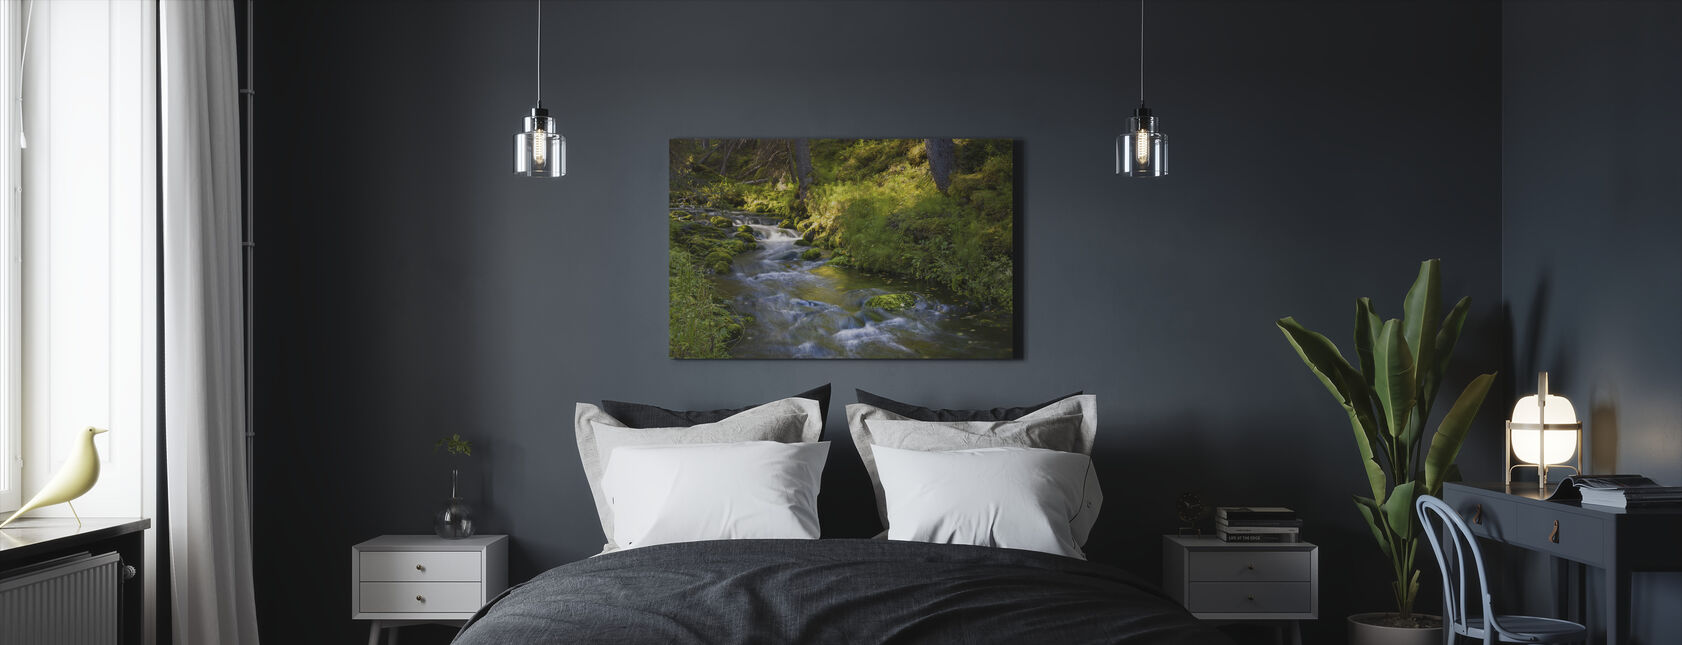 Finnish Forest River - Canvas print - Bedroom